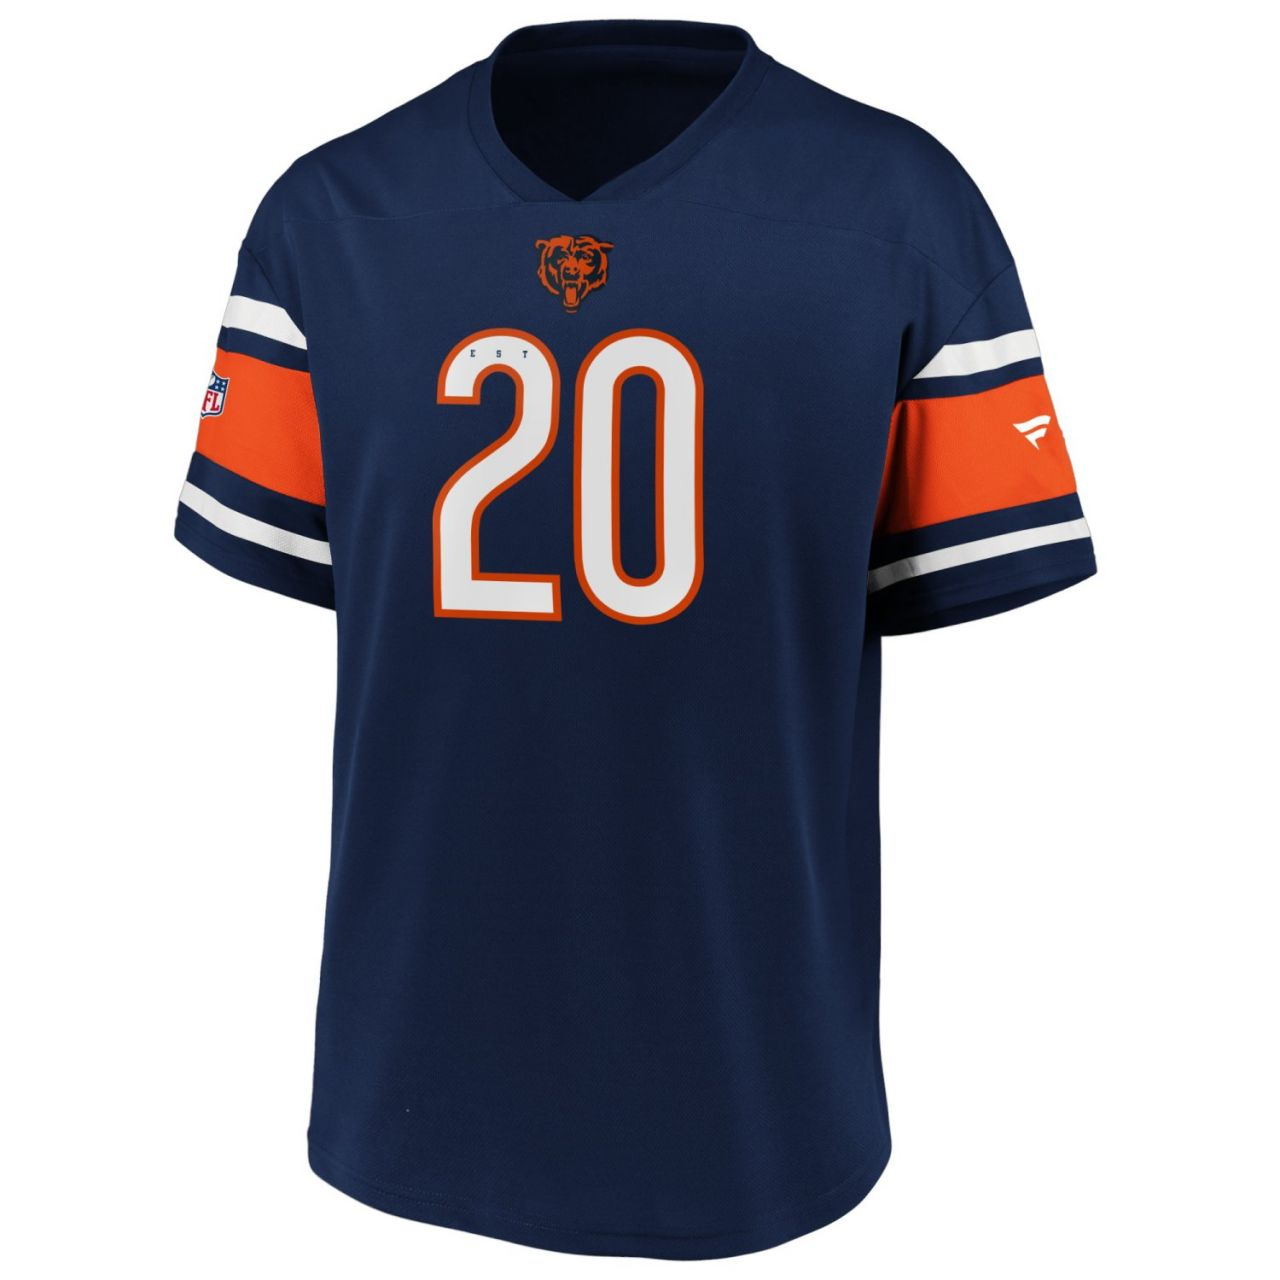 amfoo - Iconic Poly Mesh Supporters Jersey Trikot - Chicago Bears